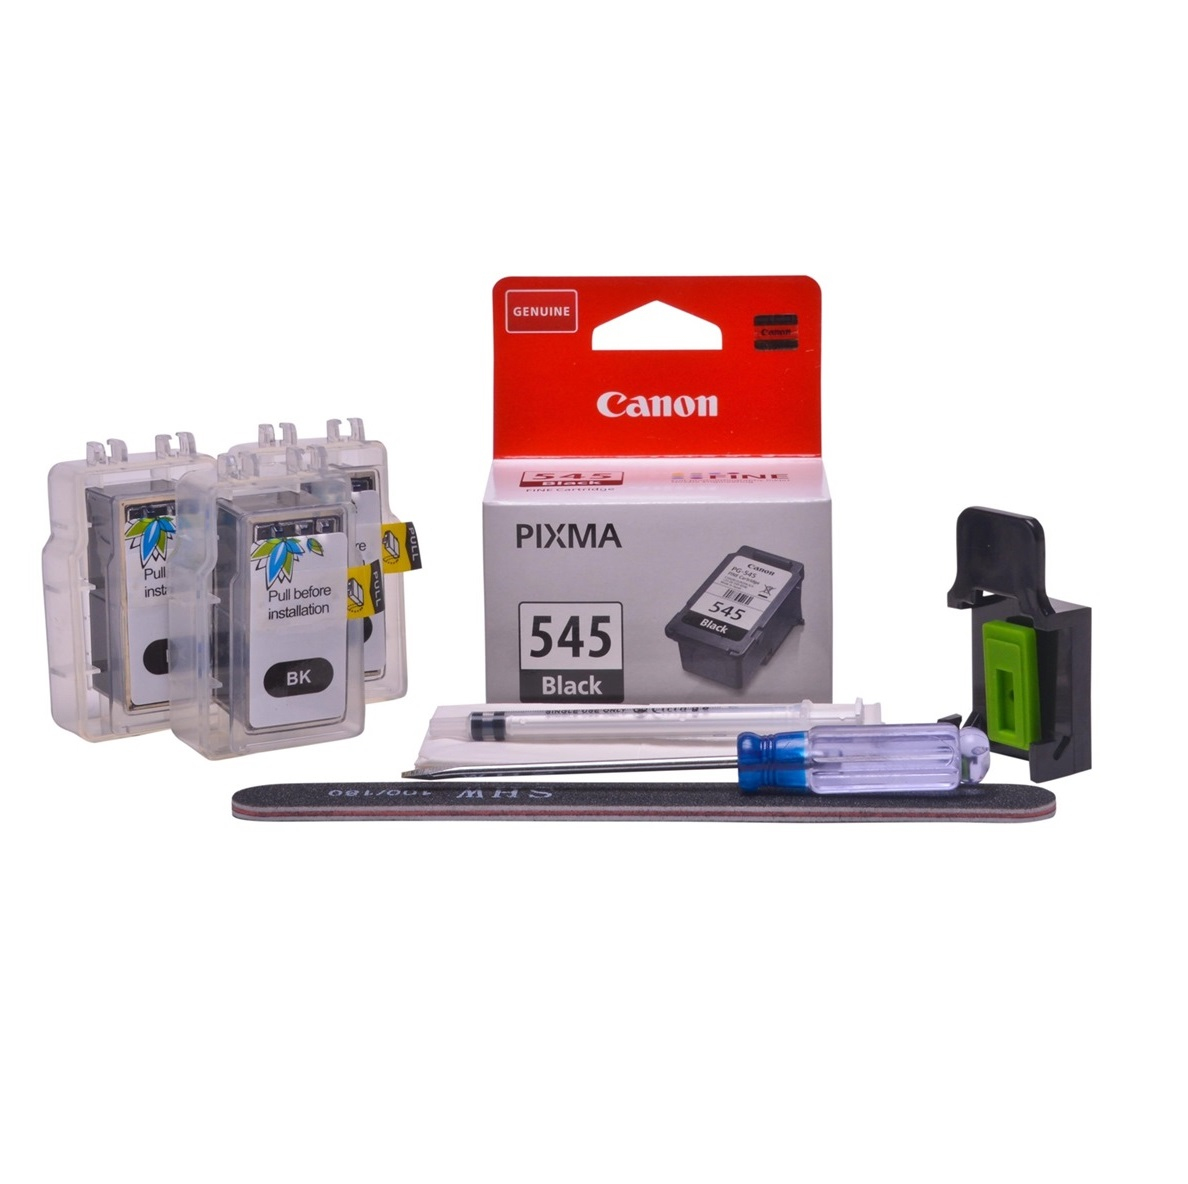 Refillable pigment Cheap printer cartridges for Canon Pixma MG3051 PG-545 PG-545XL Pigment Black